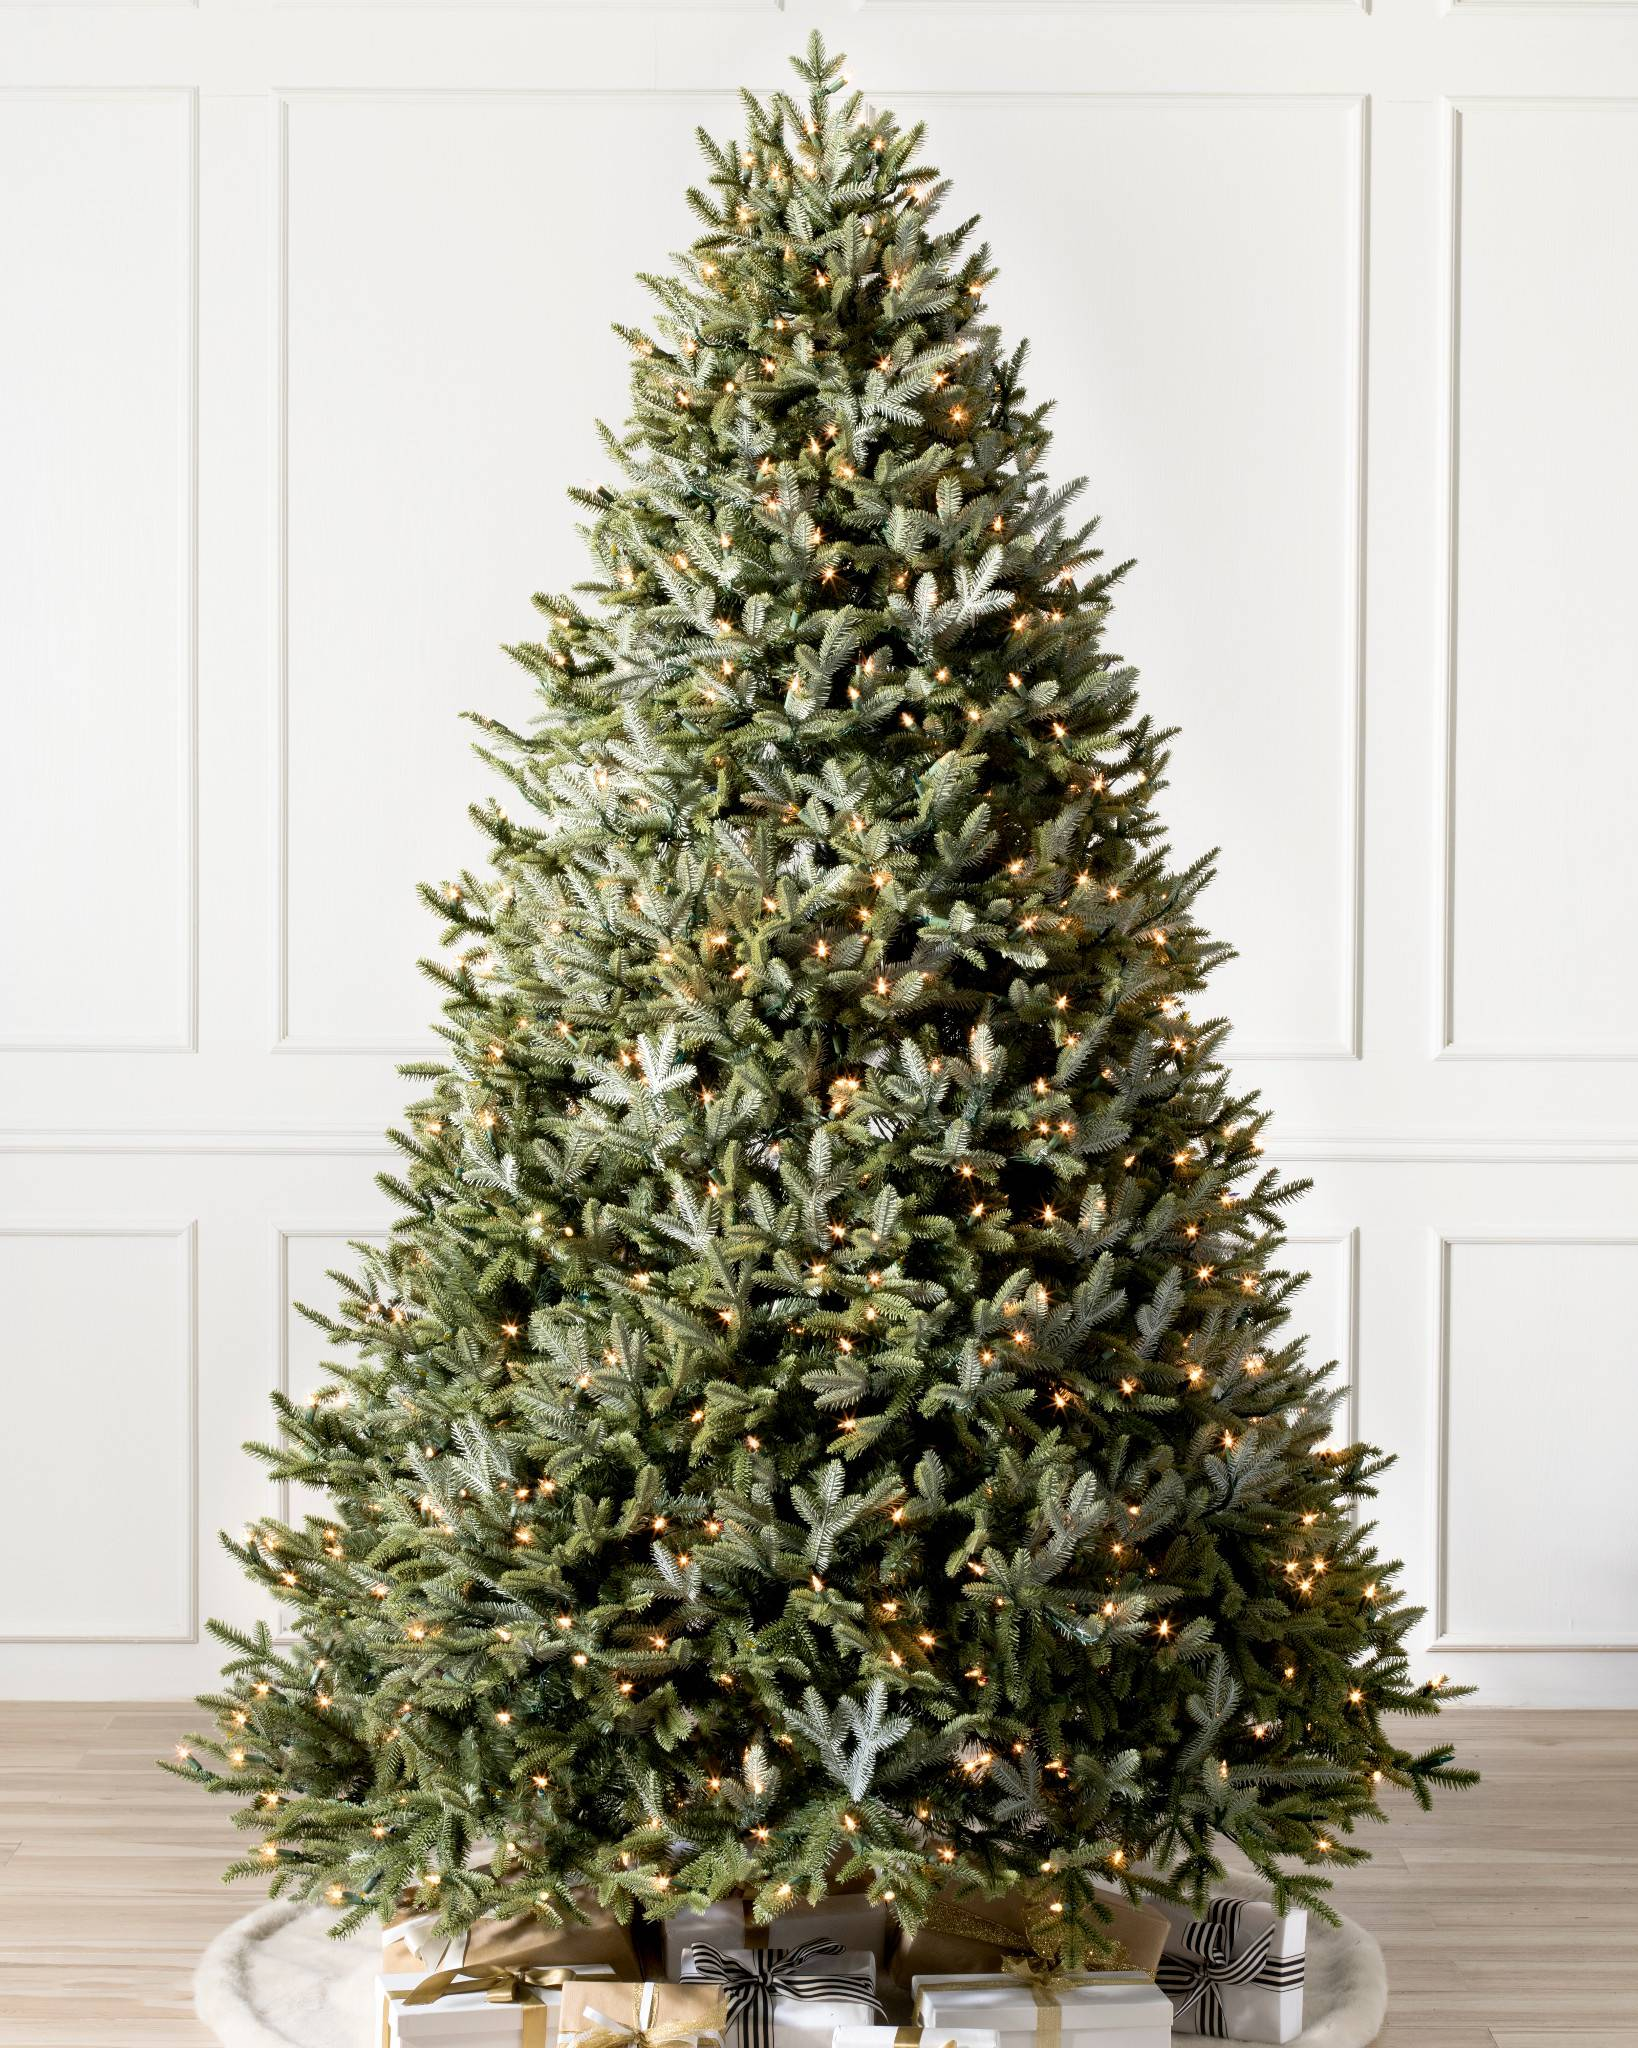 traditional artificial christmas trees reset filters bh fraser fir tree 1 - Fake Snow For Christmas Trees